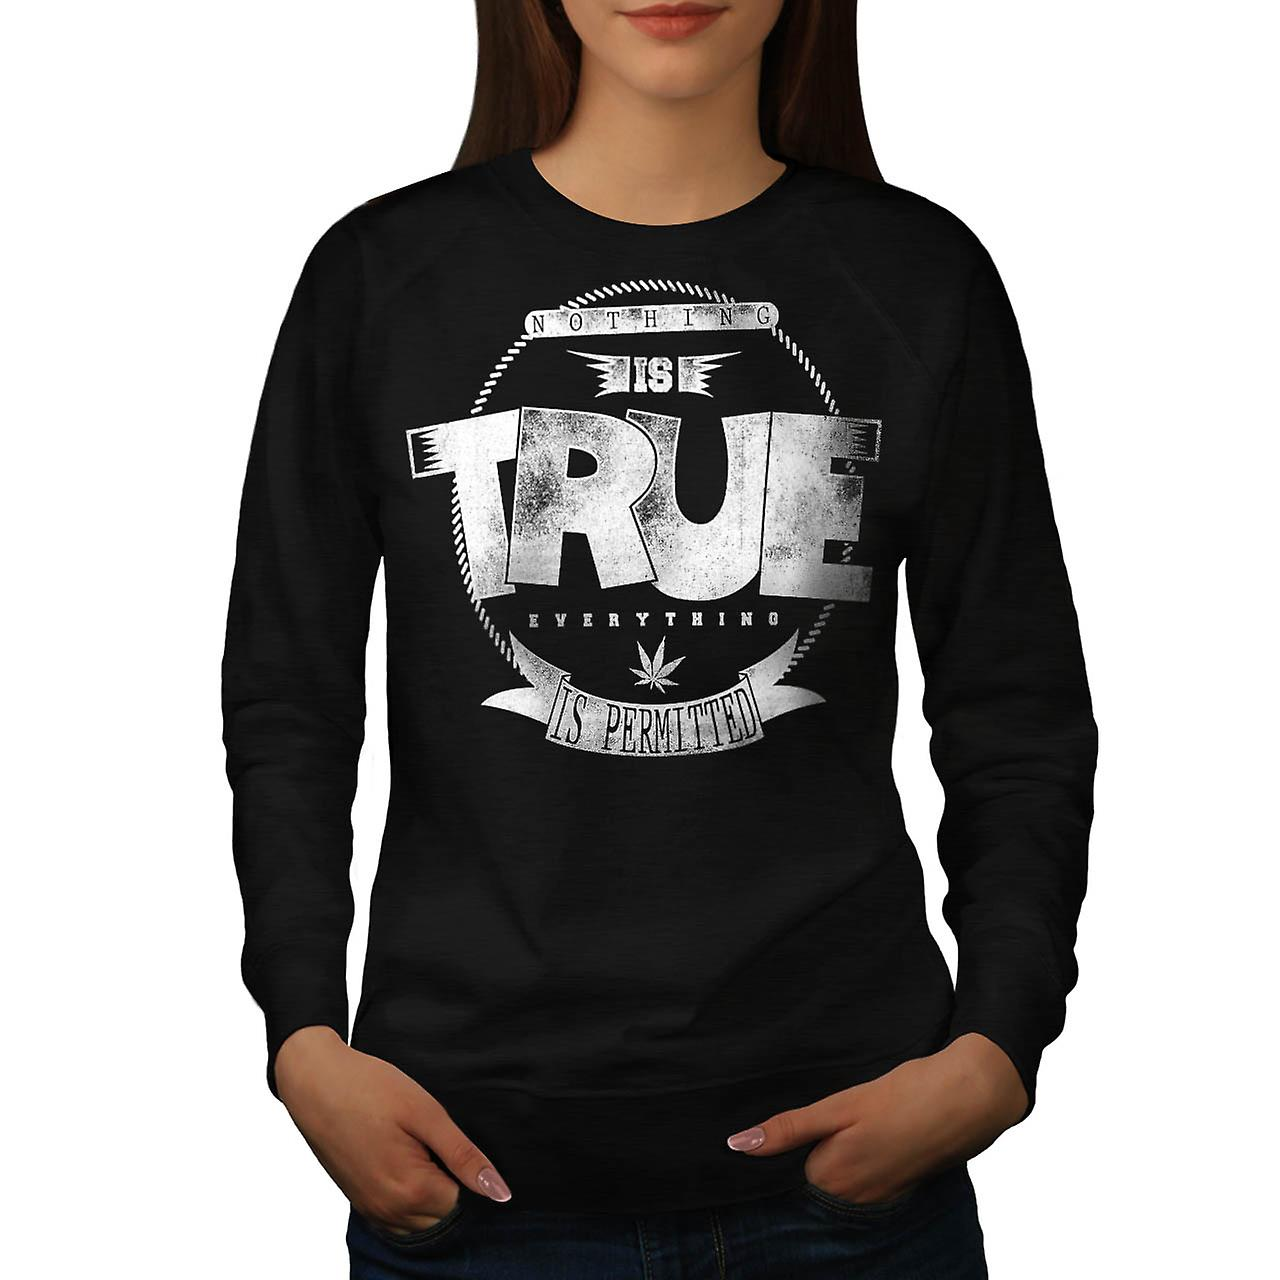 Weed Nothing True USA Marijuana Women Black Sweatshirt | Wellcoda